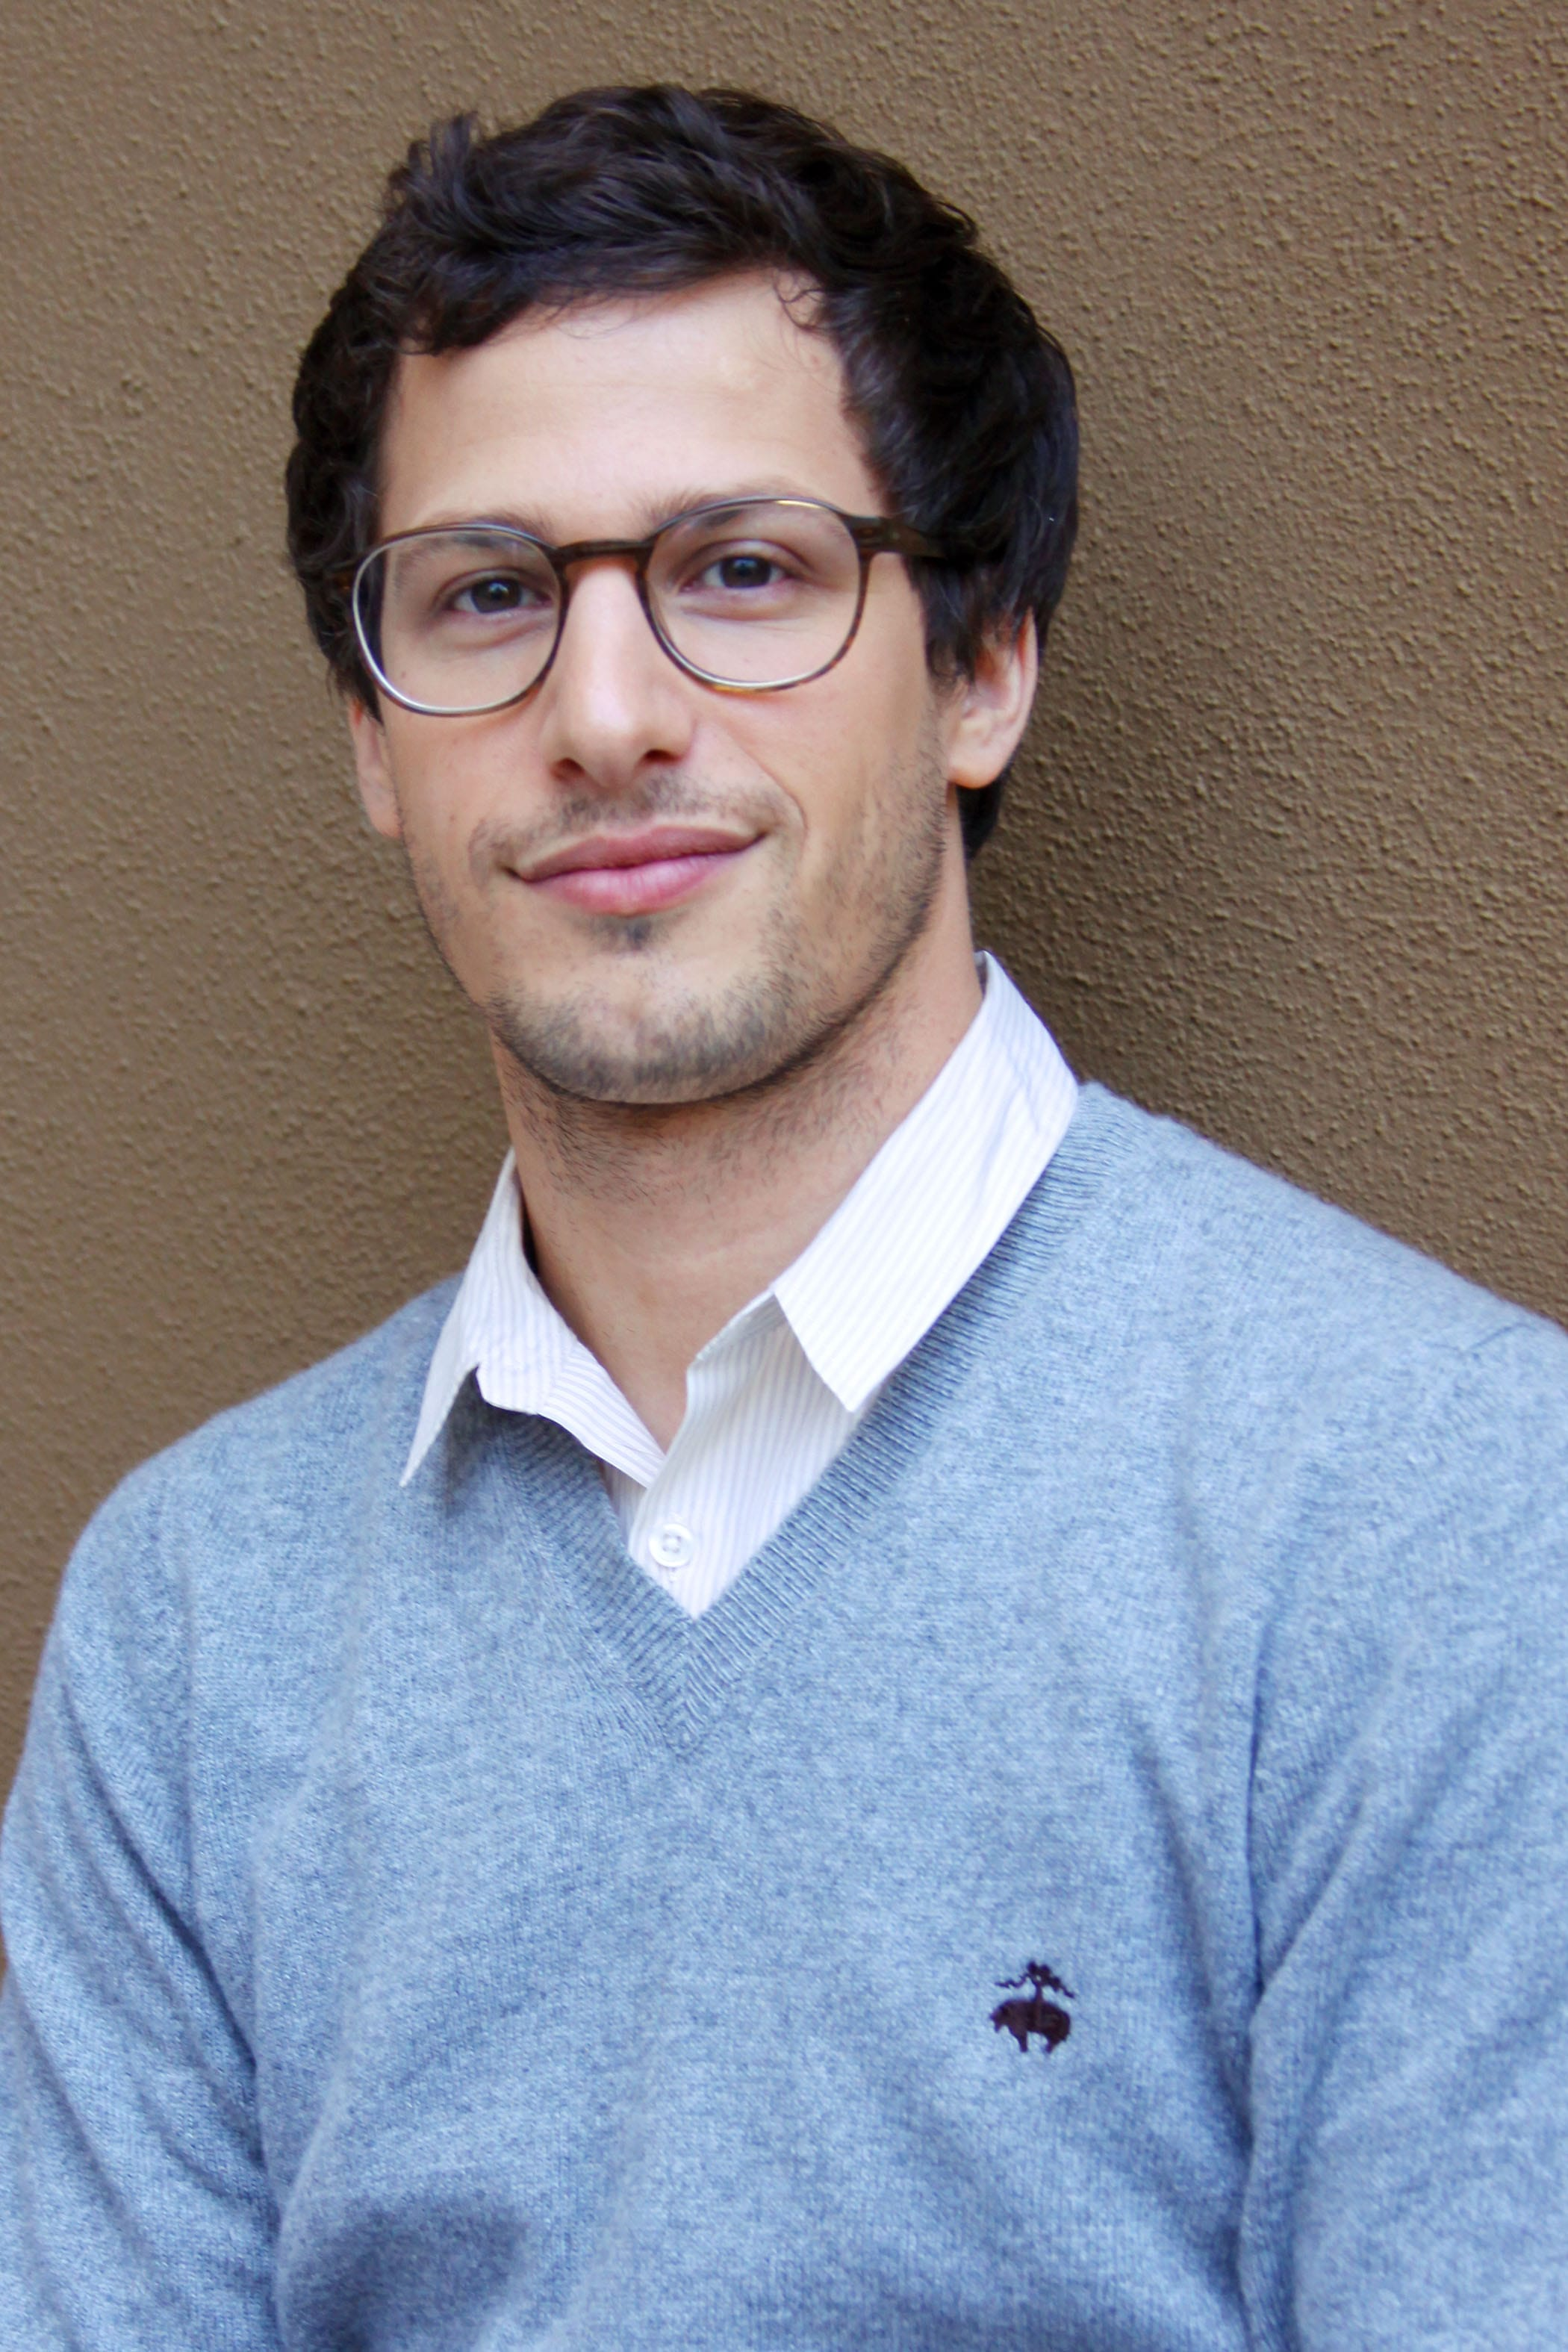 Andy Samberg For mobile